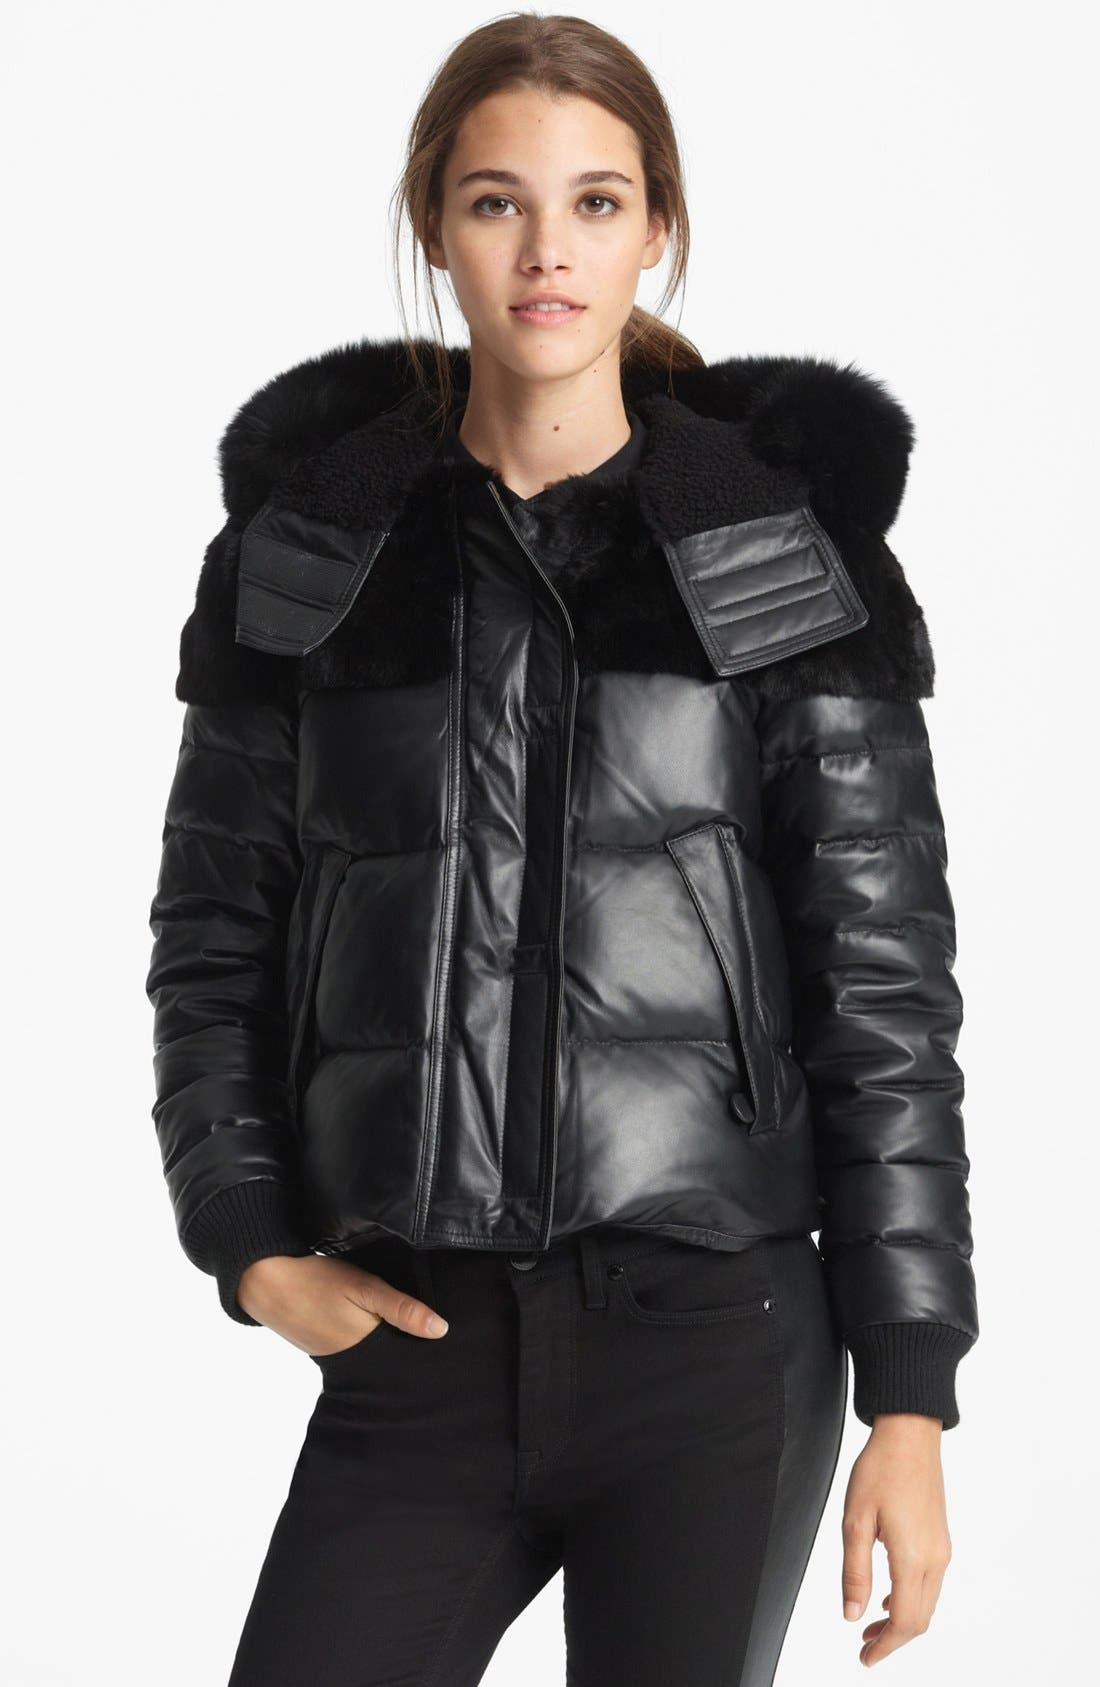 Alternate Image 1 Selected - Burberry Brit 'Arnsfield' Quilted Leather Jacket with Genuine Mix Fur Trim